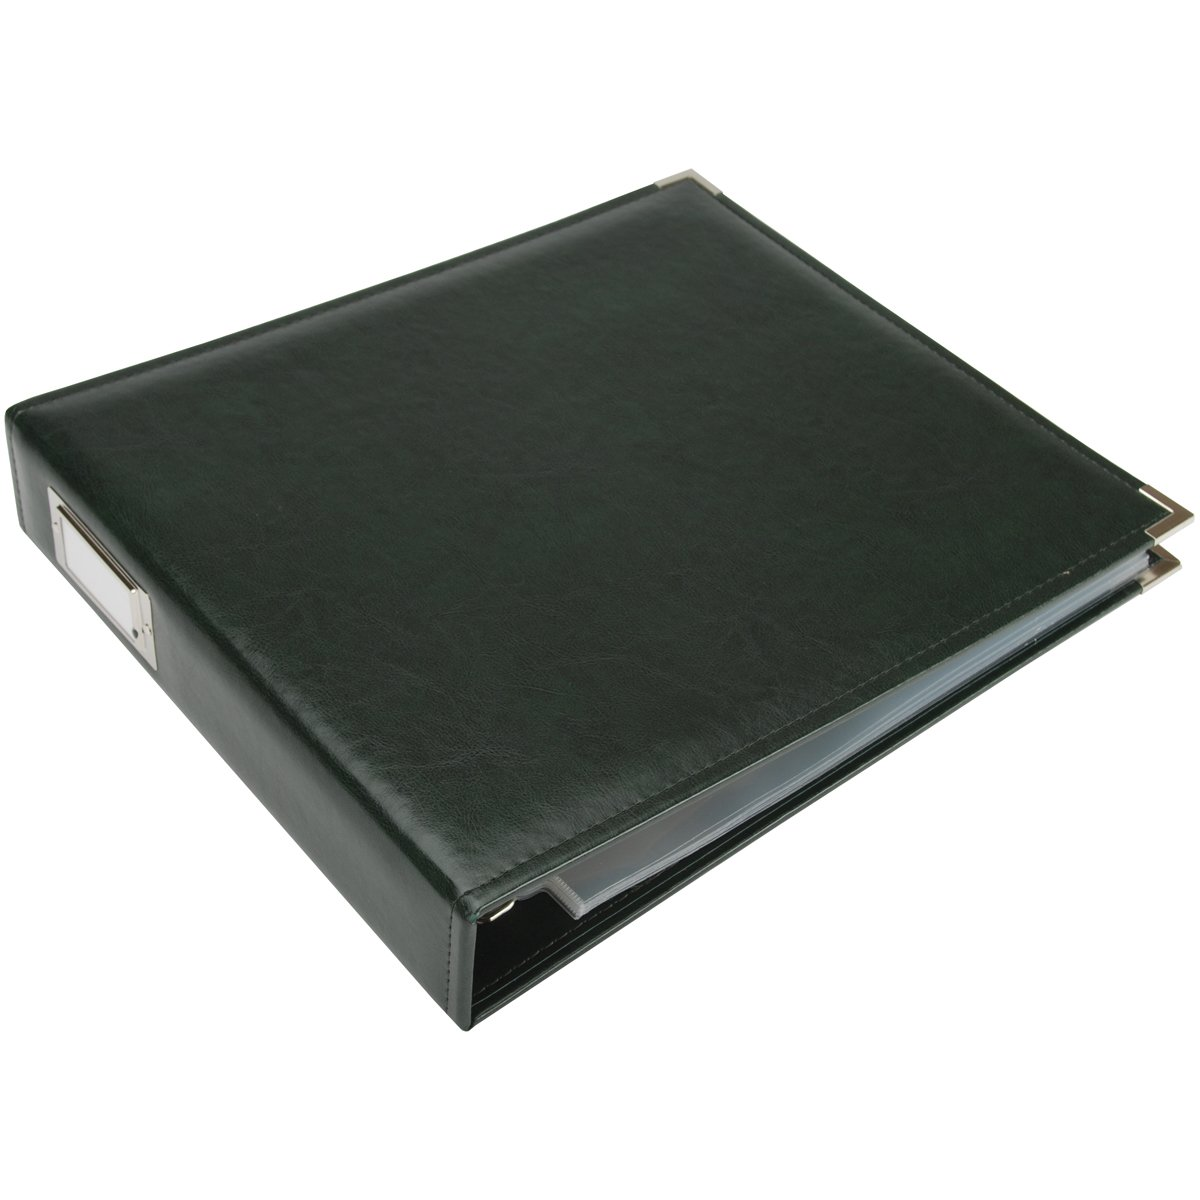 12 x 12-inch Classic Leather 3-Ring Album by We R Memory Keepers | Kiwi, includes 5 page protectors 40345-6